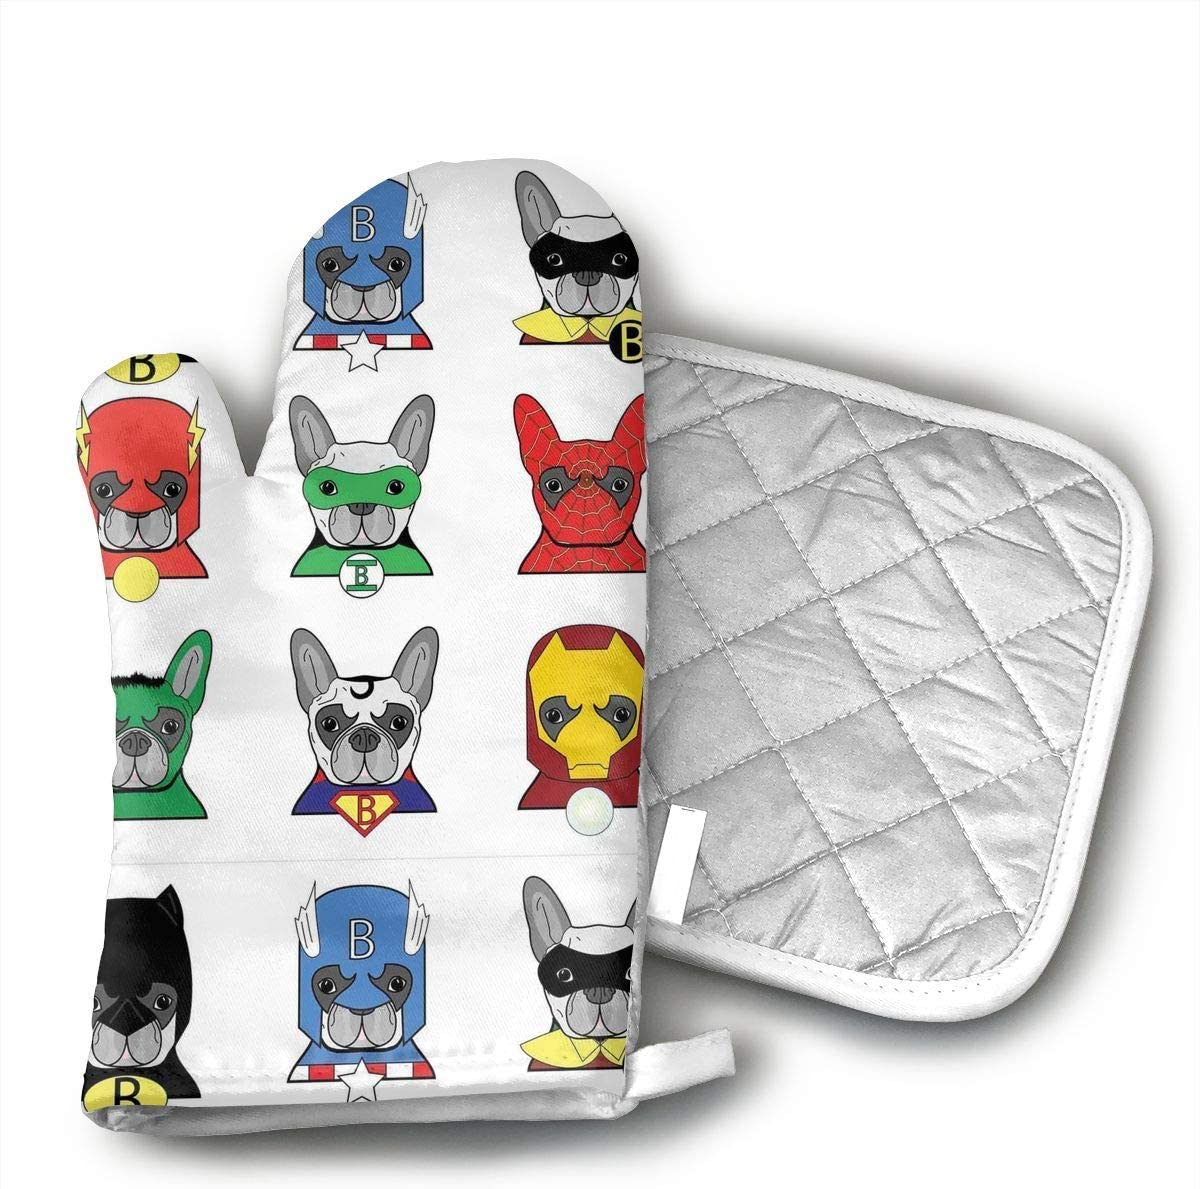 Niwaww Superhero Bulldog Fun Cartoon Puppies Oven Mitts,Professional Heat Resistant Microwave BBQ Oven Insulation Thickening Cotton Gloves Baking Pot Mitts Soft Inner Lining Kitchen Cooking